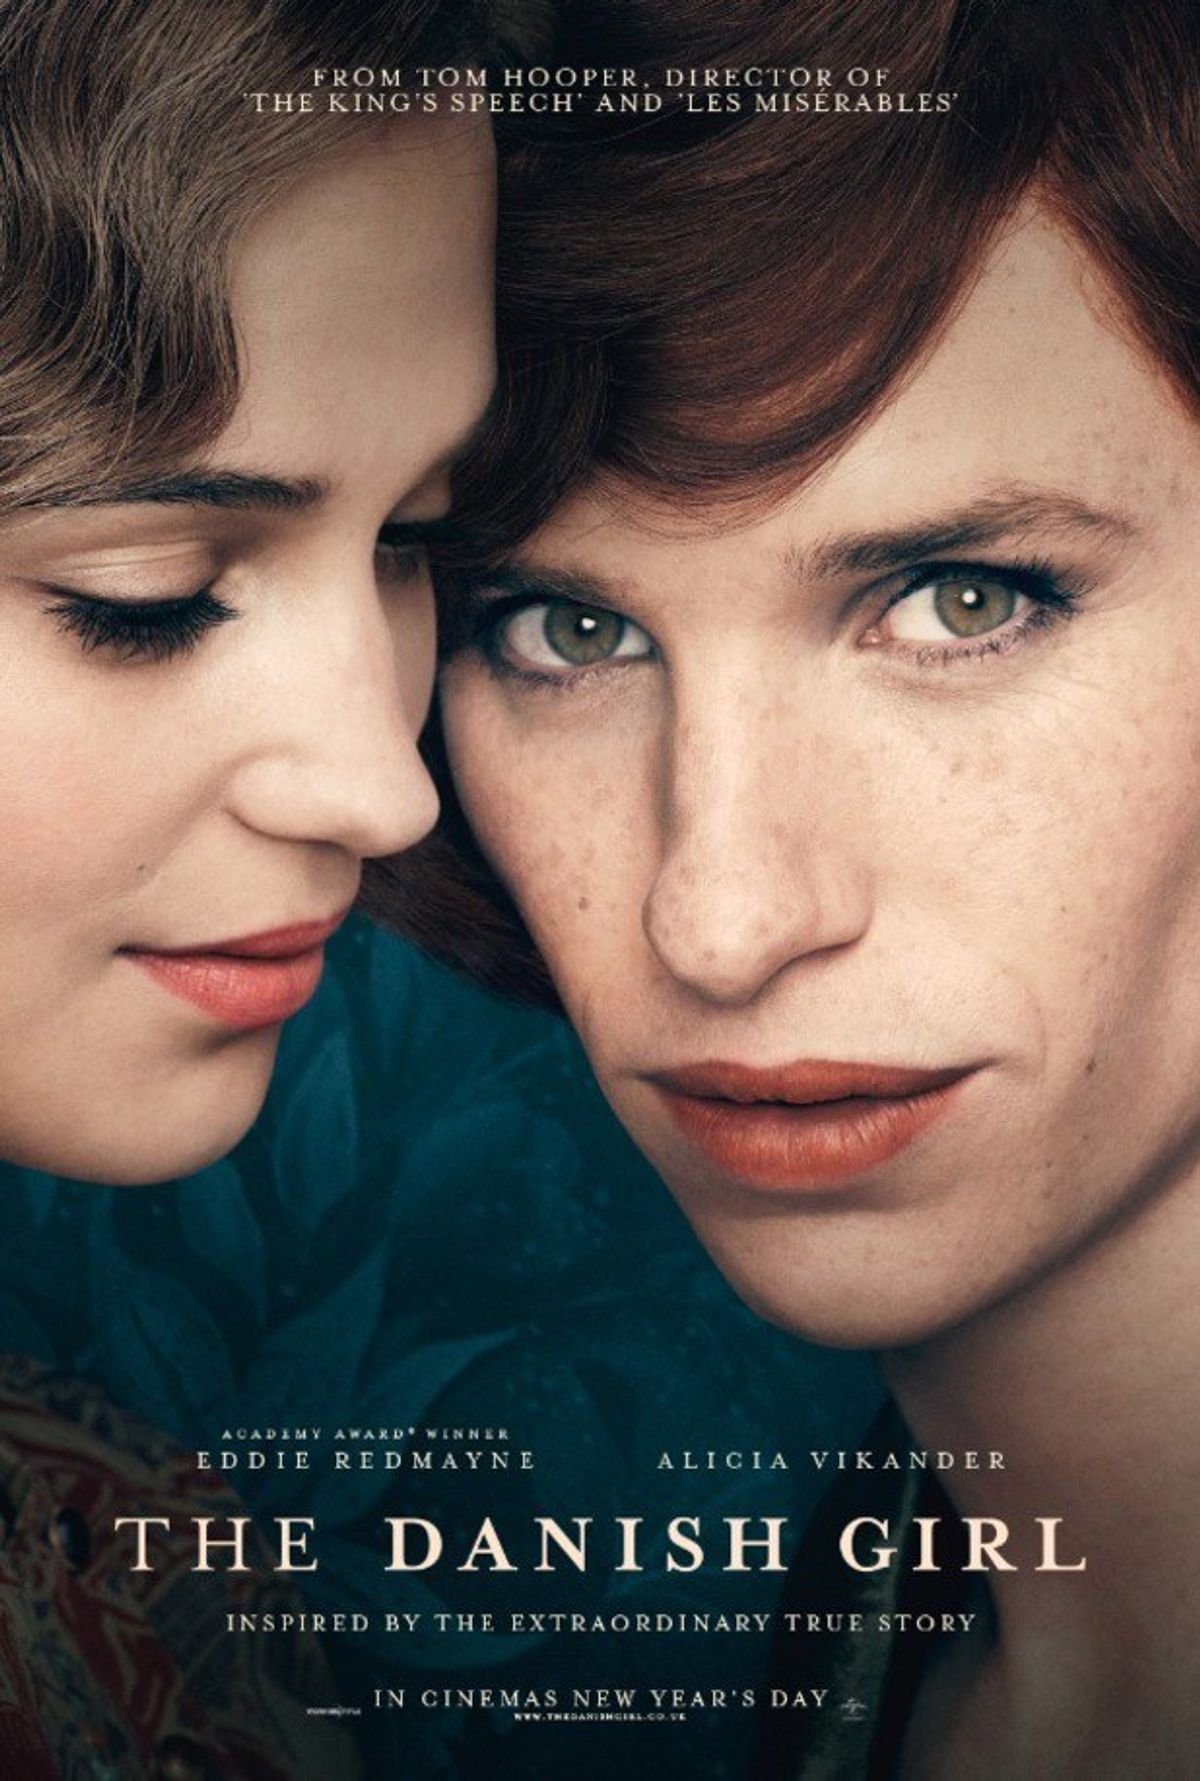 'The Danish Girl': A Review And The Importance Of Transgender Visibility